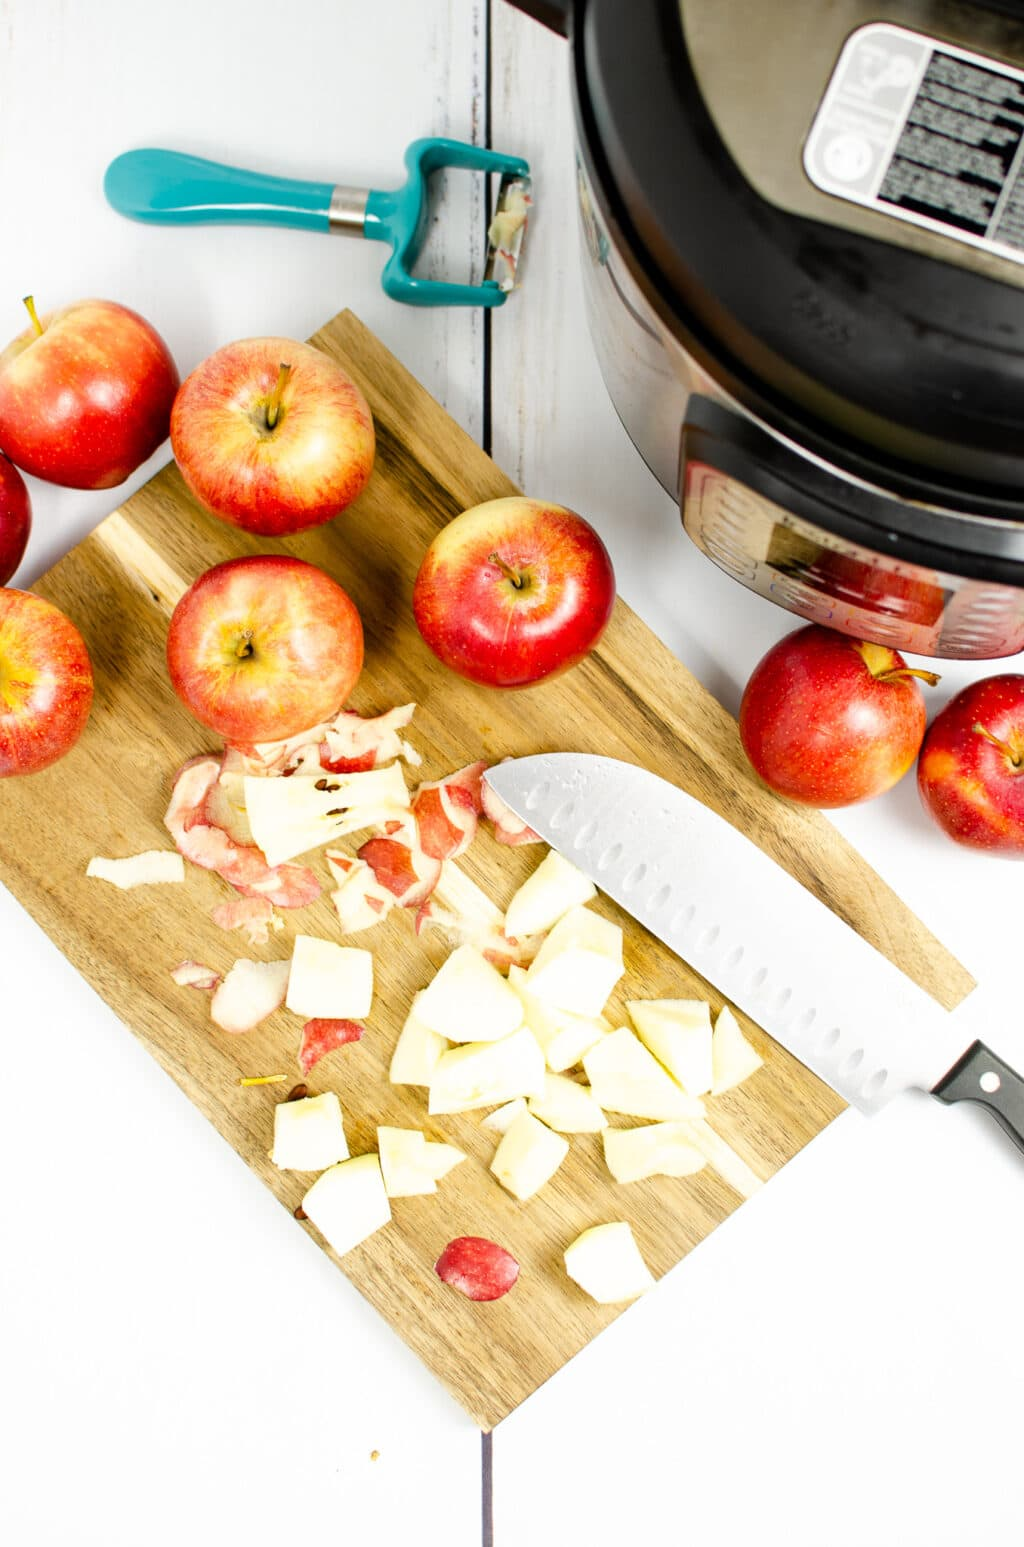 apples on a cutting board being cut into cubes